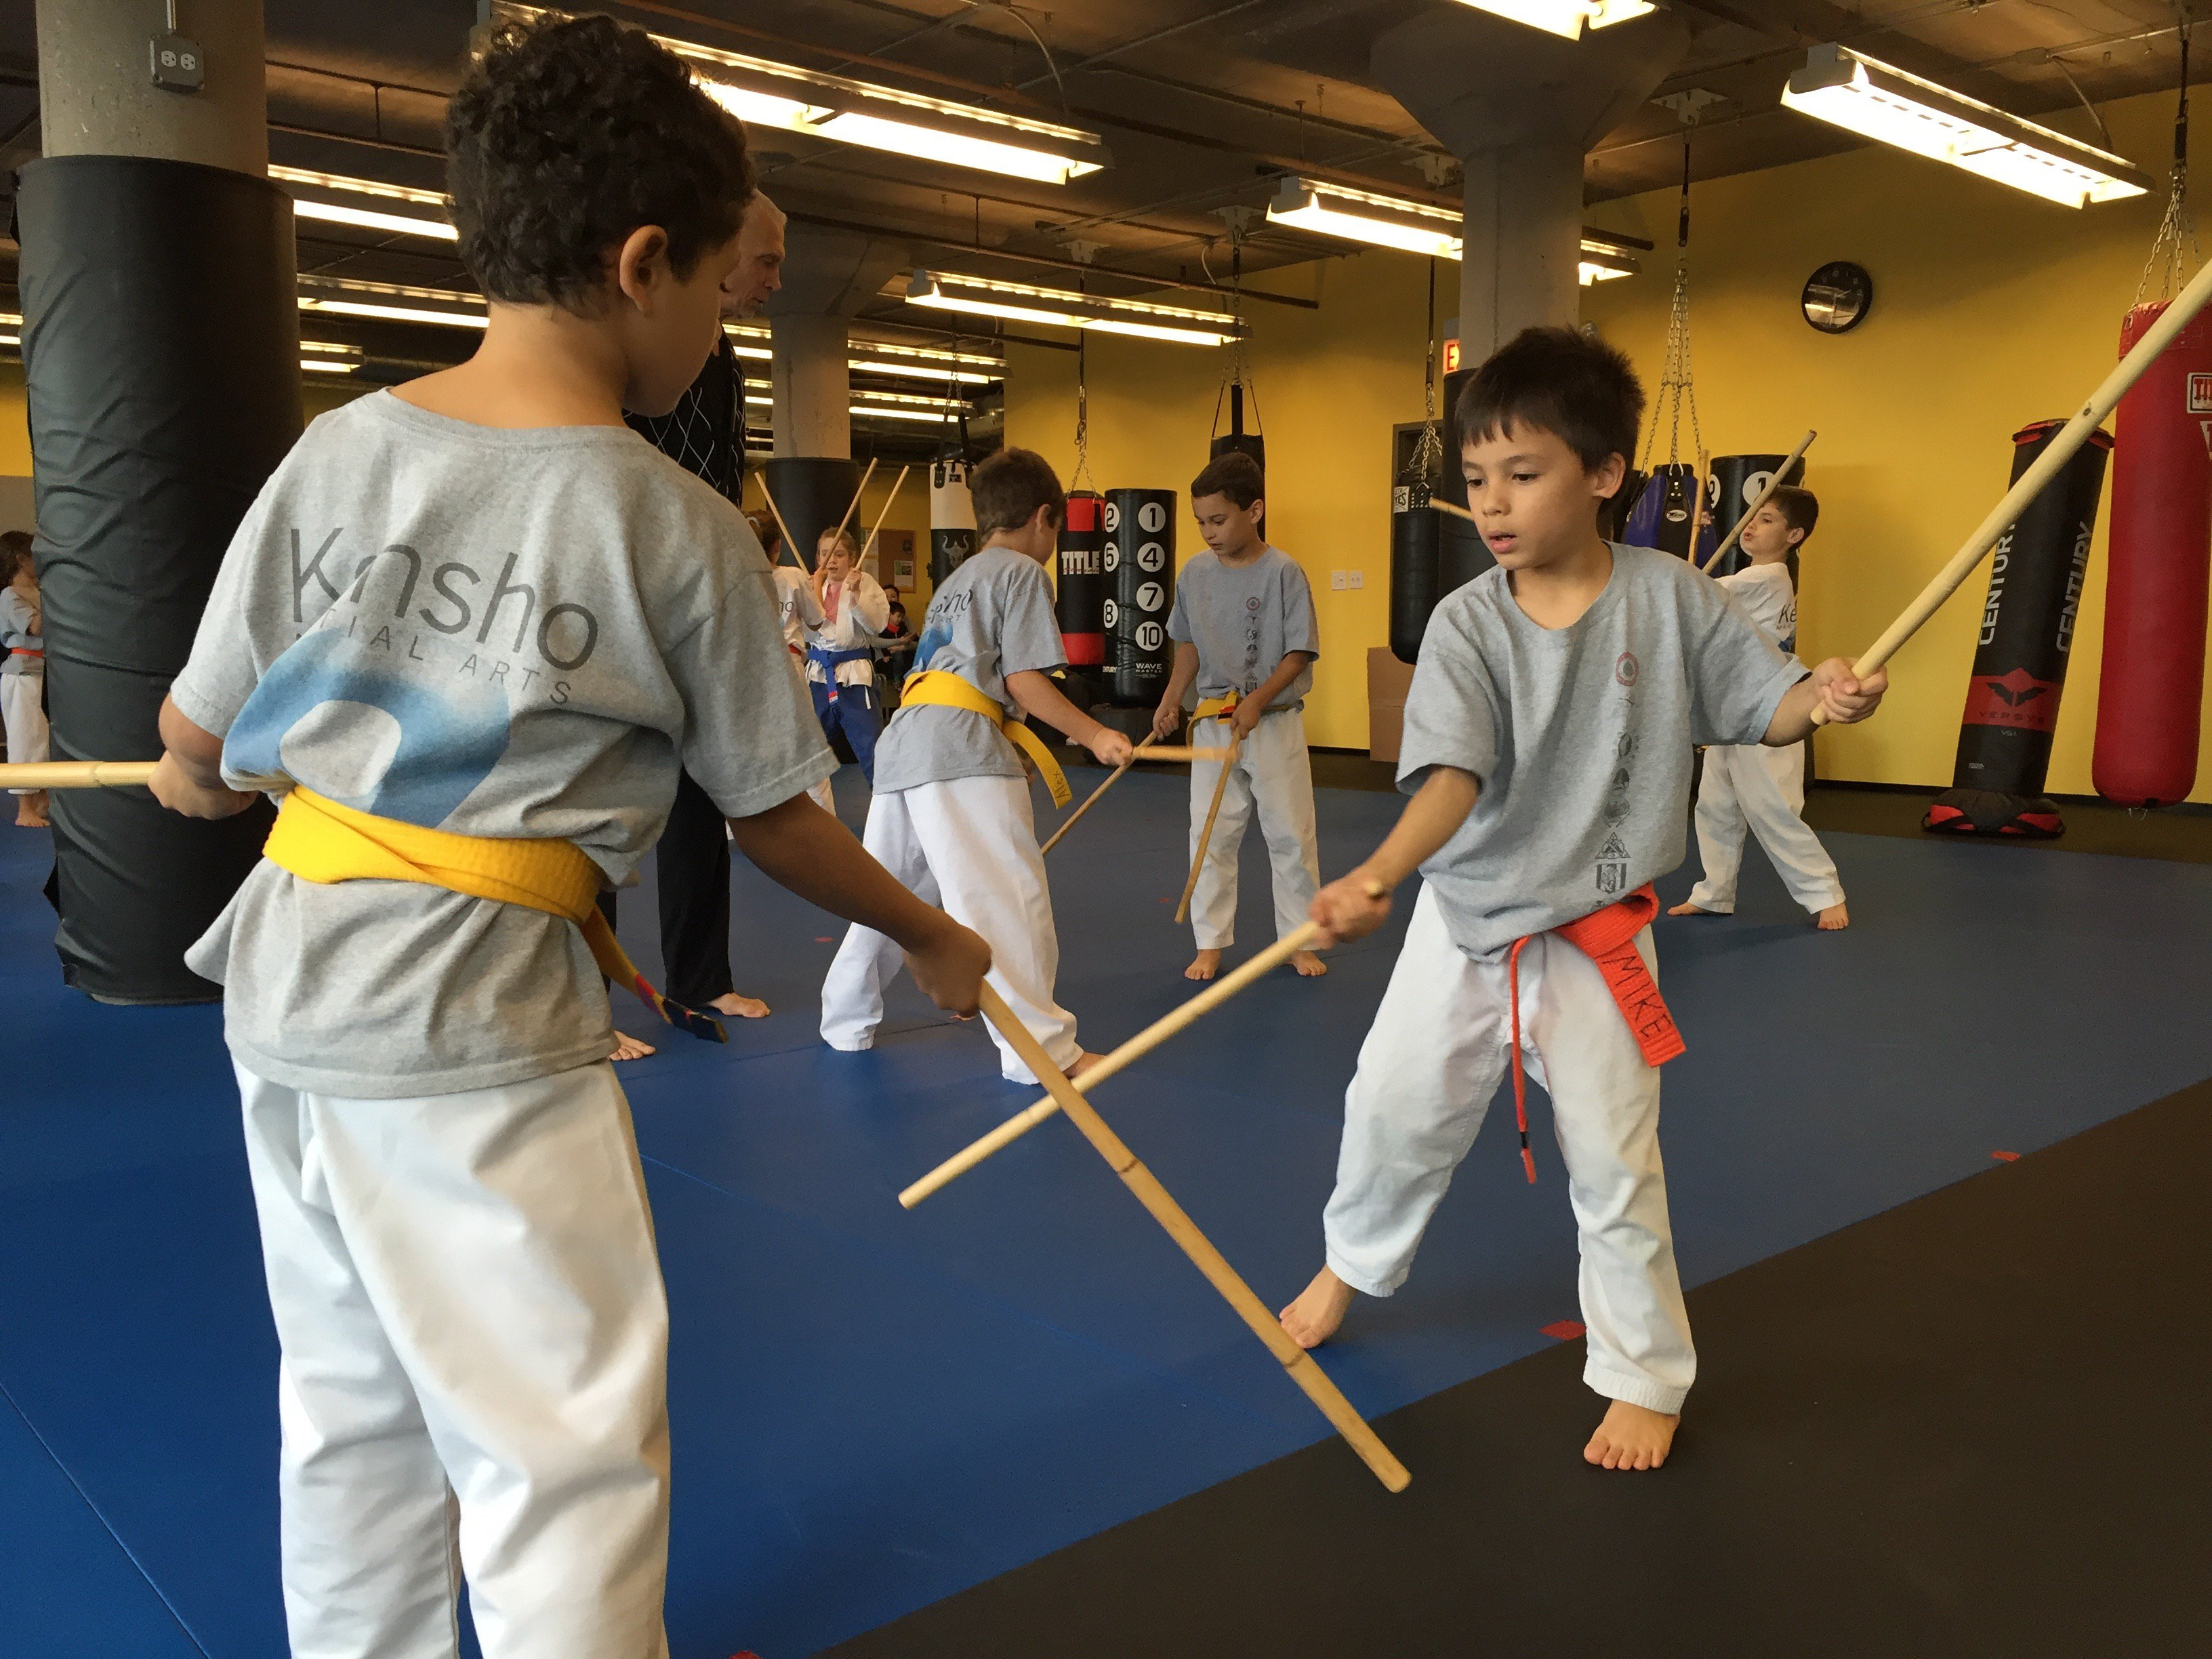 Kids Martial Arts And Kali Weapons